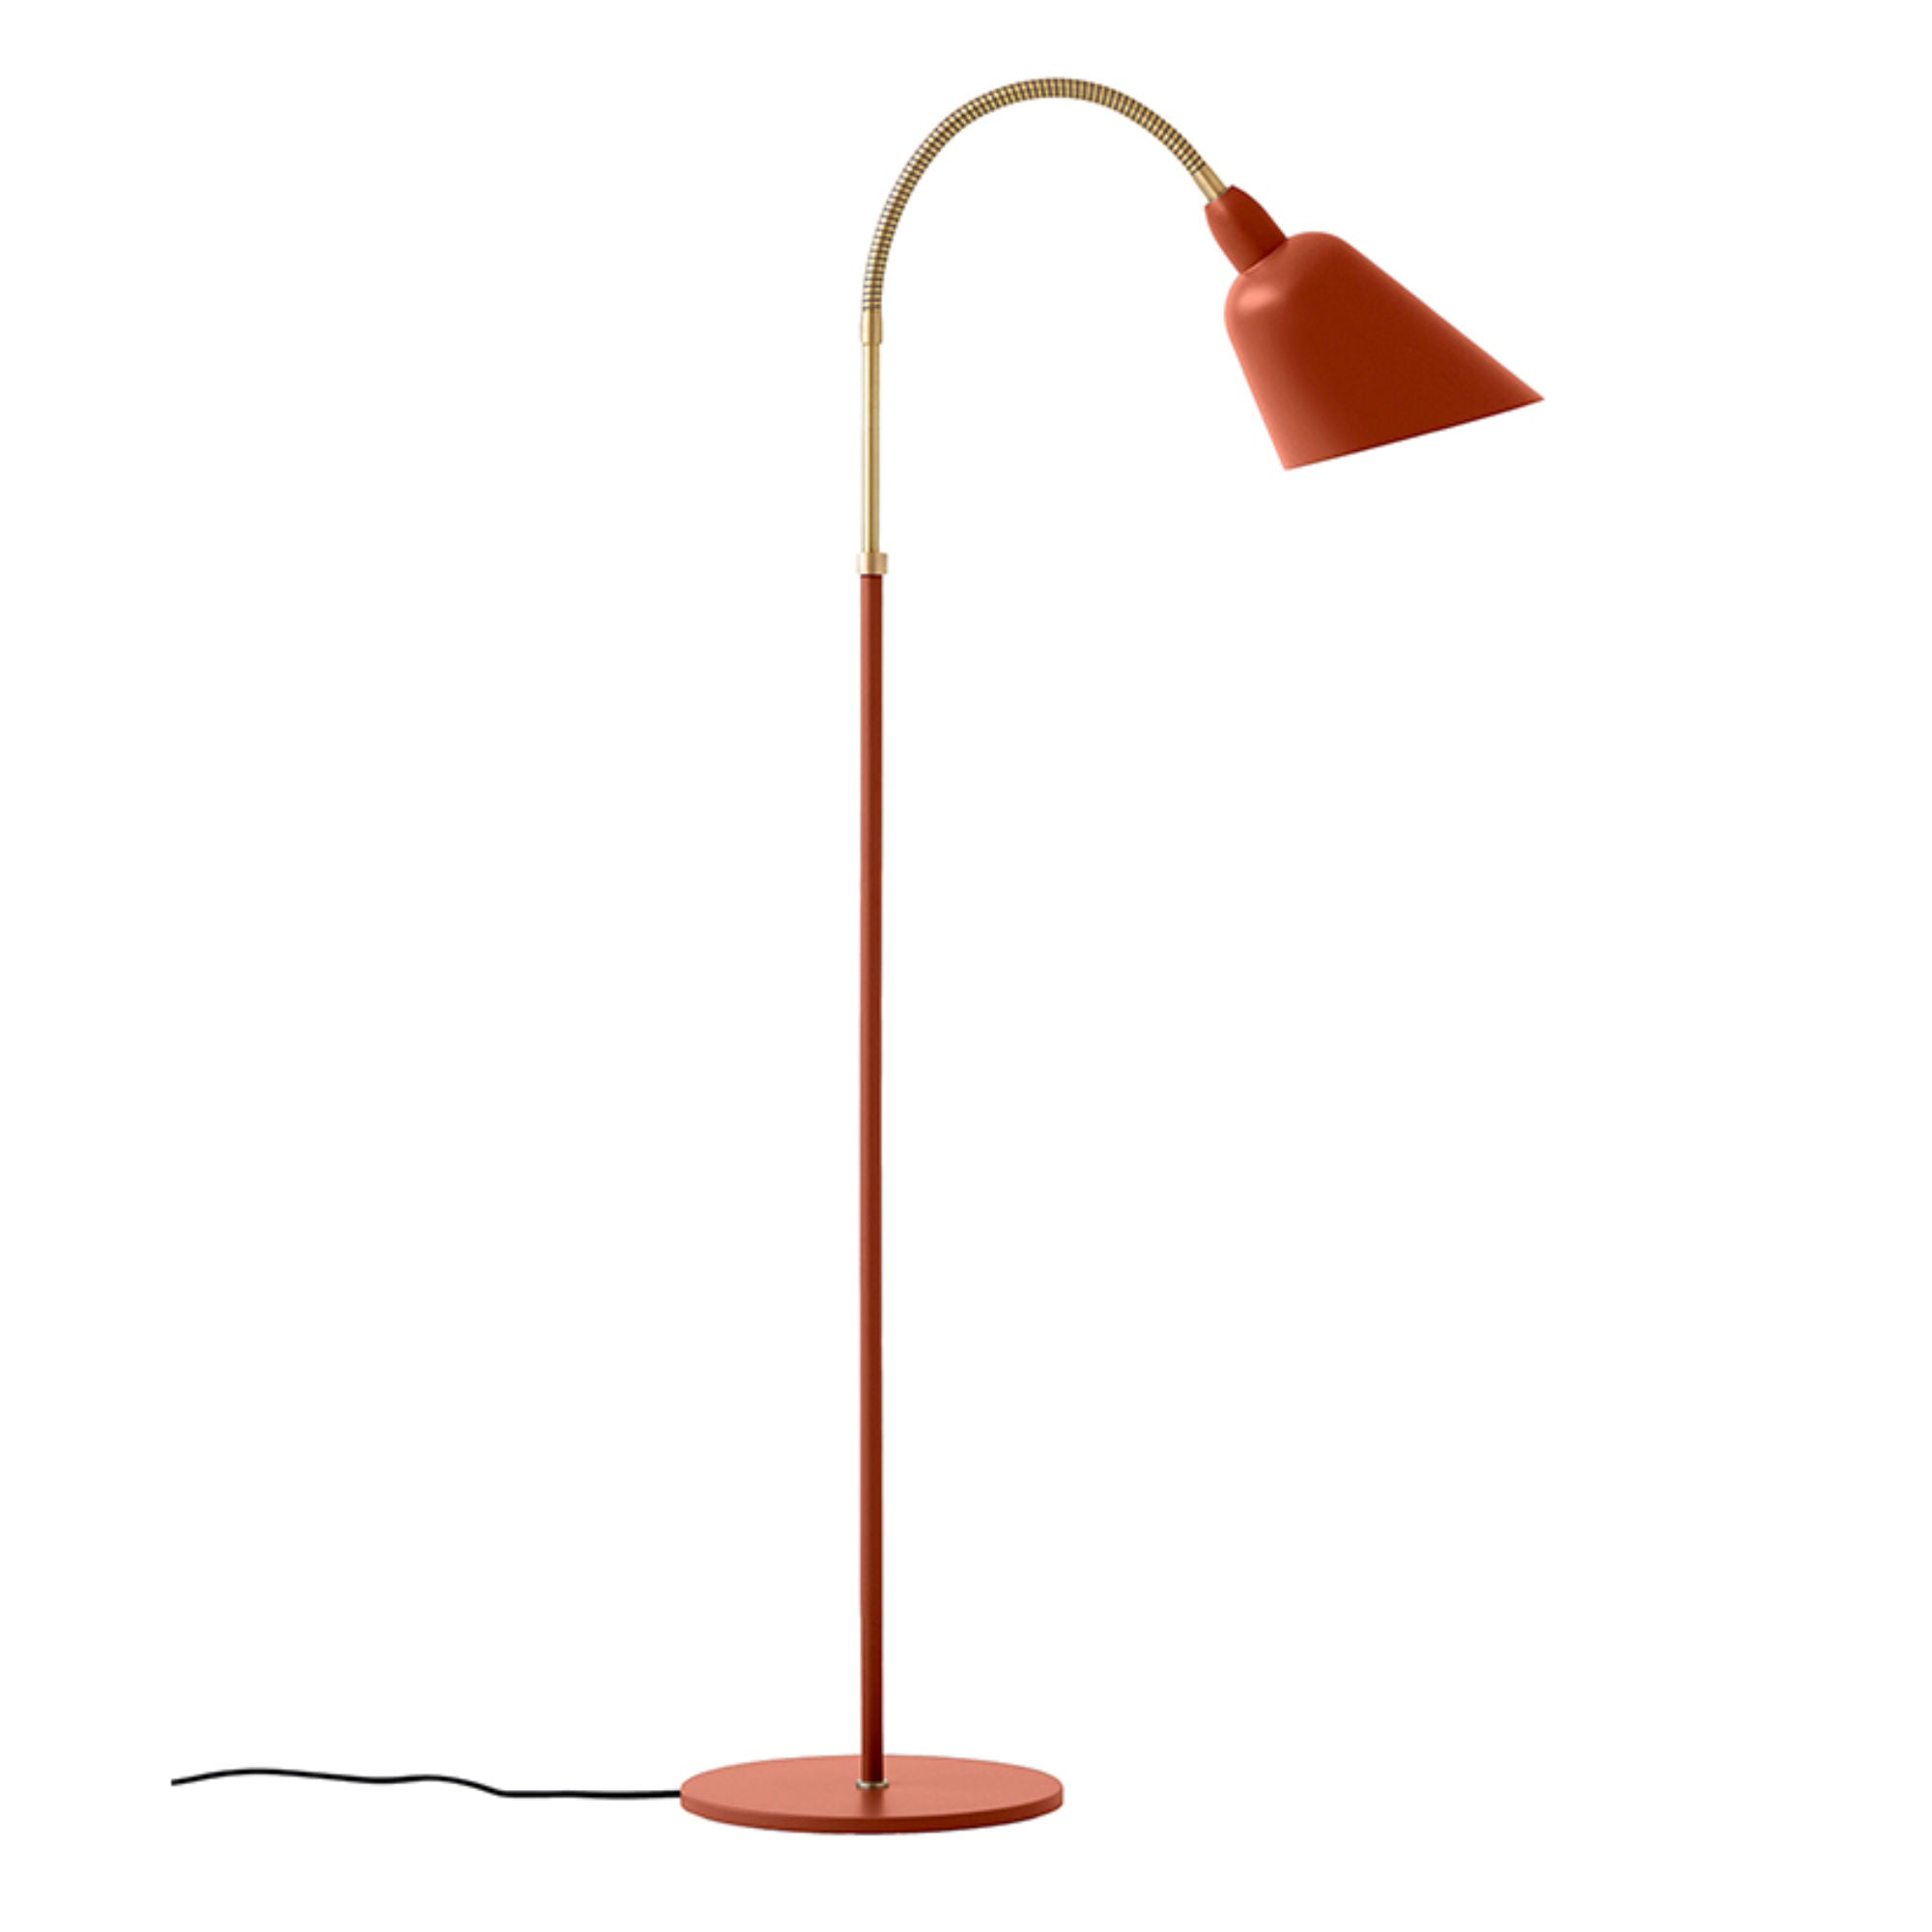 &Tradition AJ7 Bellevue Floor Lamp , Copper Brown/Brass